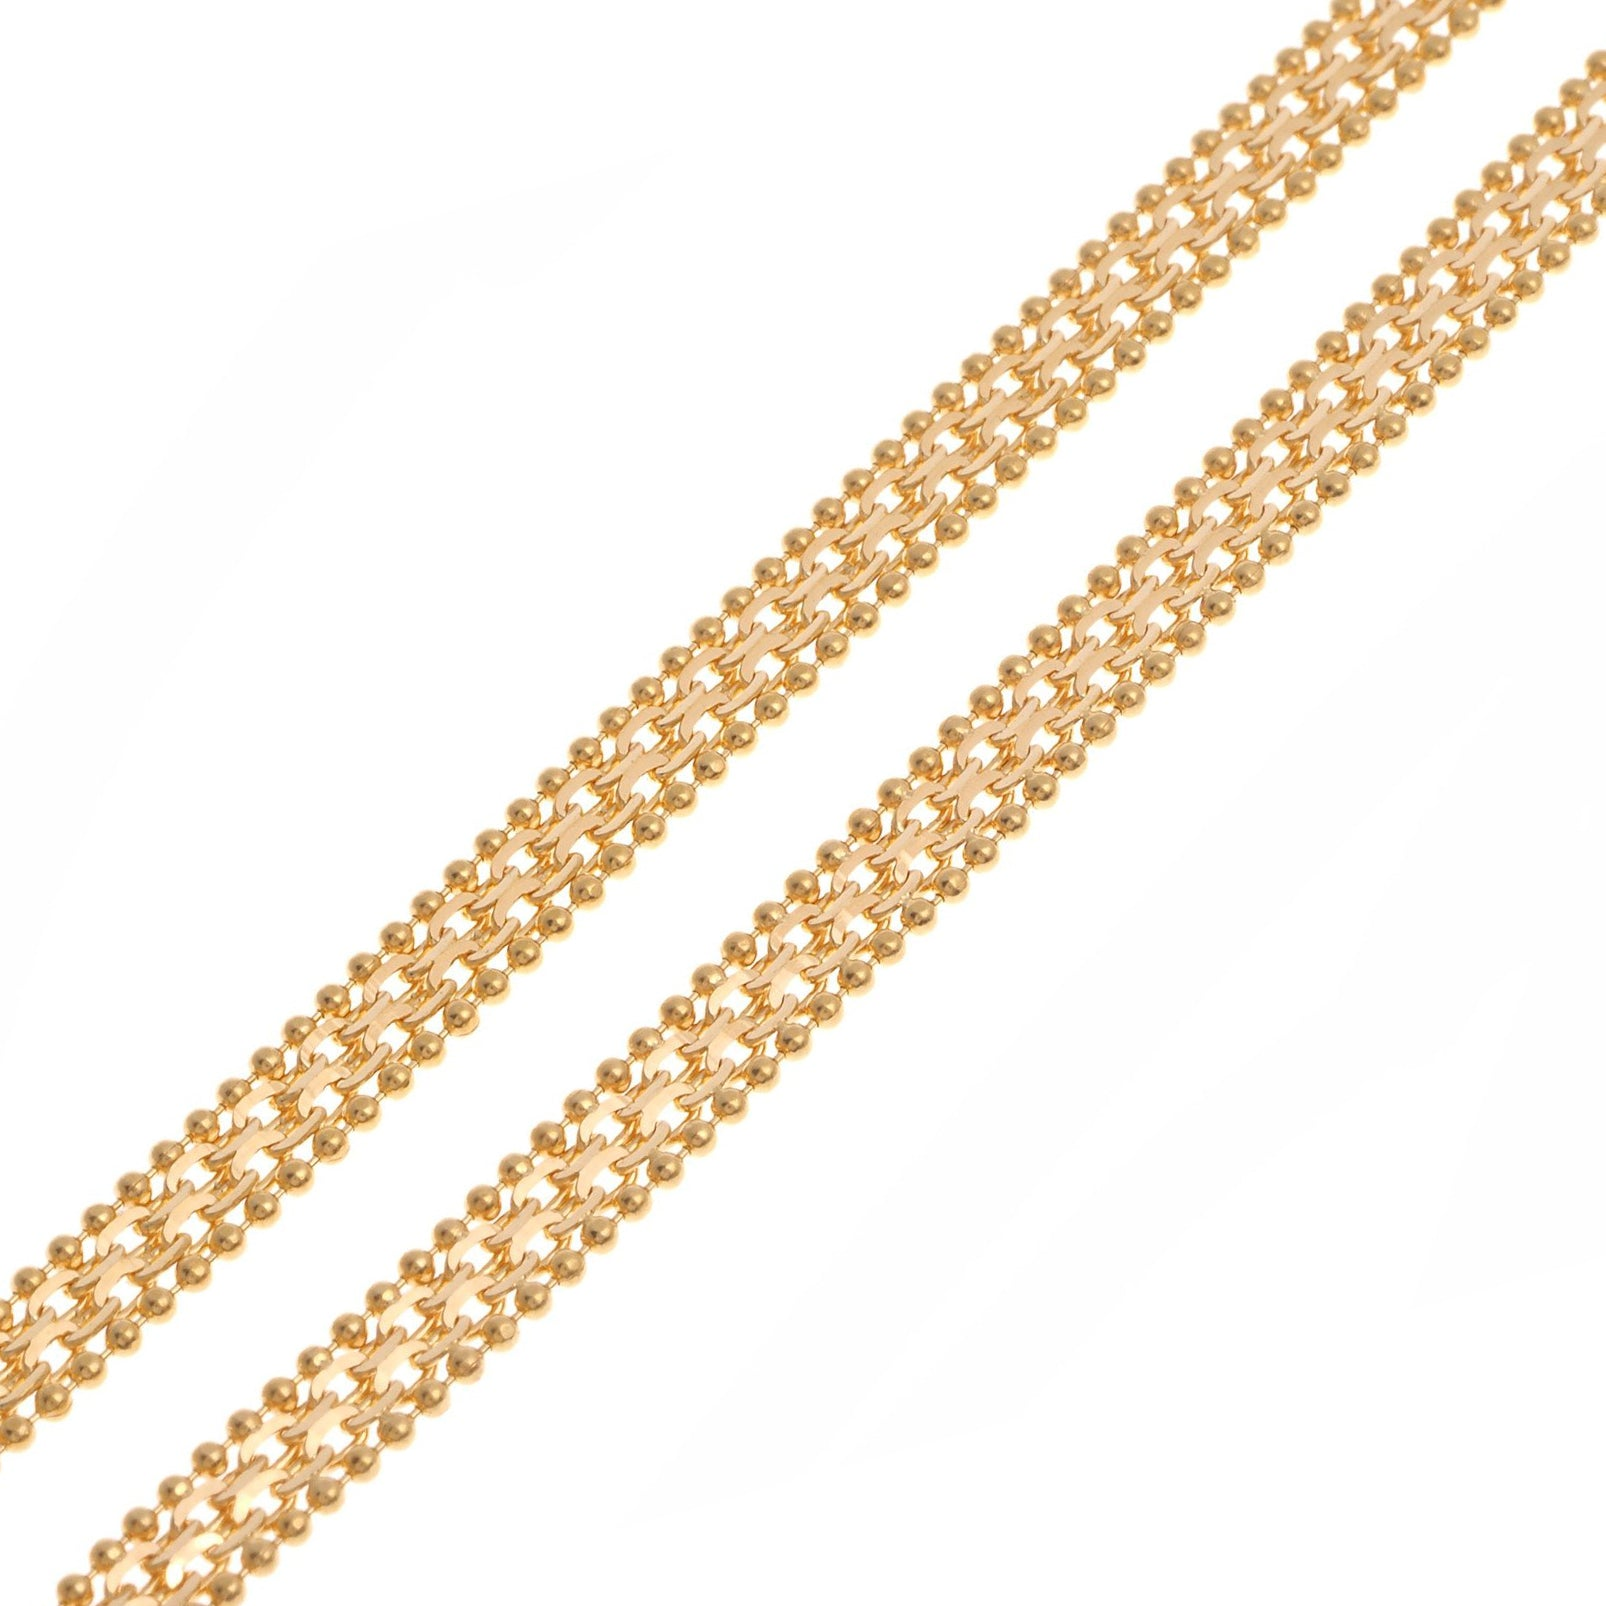 22ct Gold Unisex Chain with lobster clasp (C-4746)